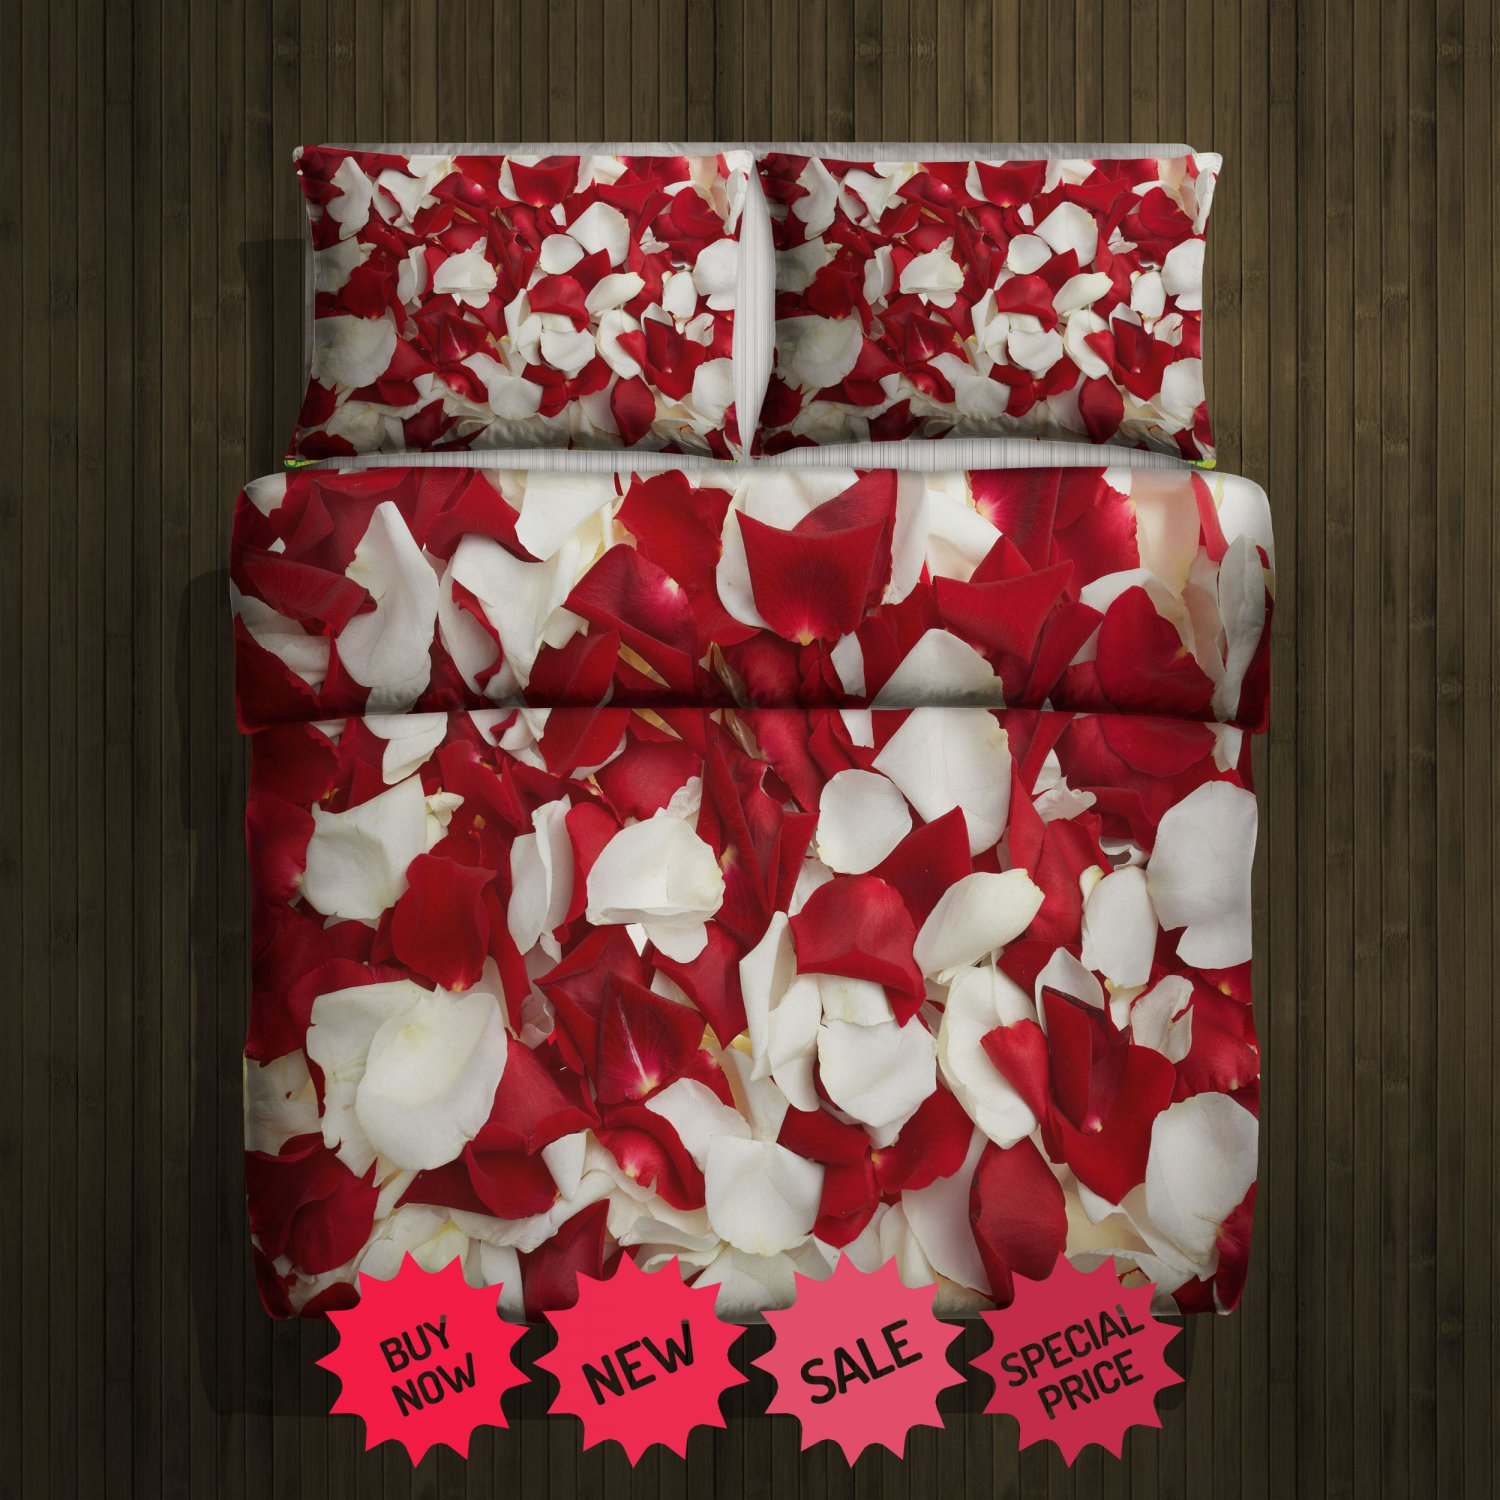 Rose white & Red Blanket Large & 2 Pillow Cases #98637182 ,98637780(2)